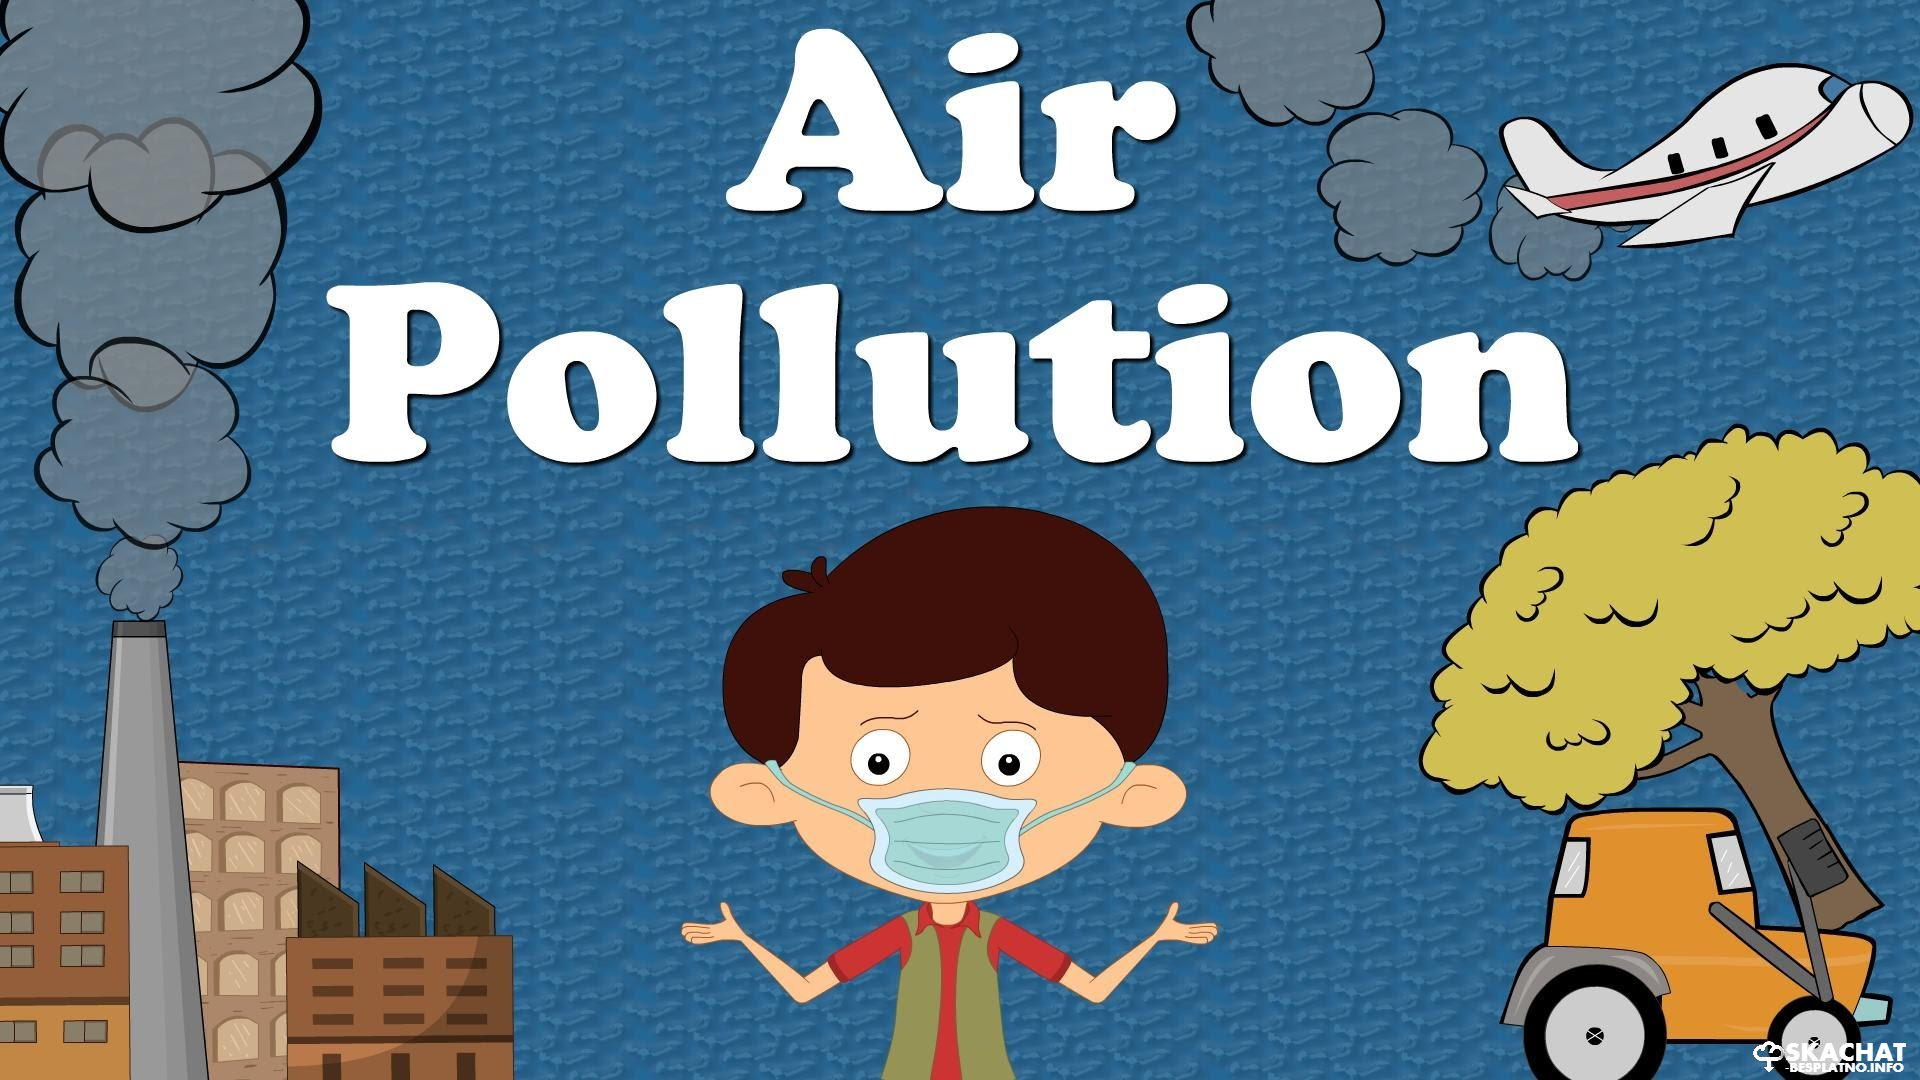 air pollution СКАЧАТЬ РЕФЕРАТ НА ЛЮБУЮ ТЕМУ БЕСПЛАТНО smokes pouring out of tall factory chimneys make the air dirty as well as they pollute it jet planes also add their bad breath to the air